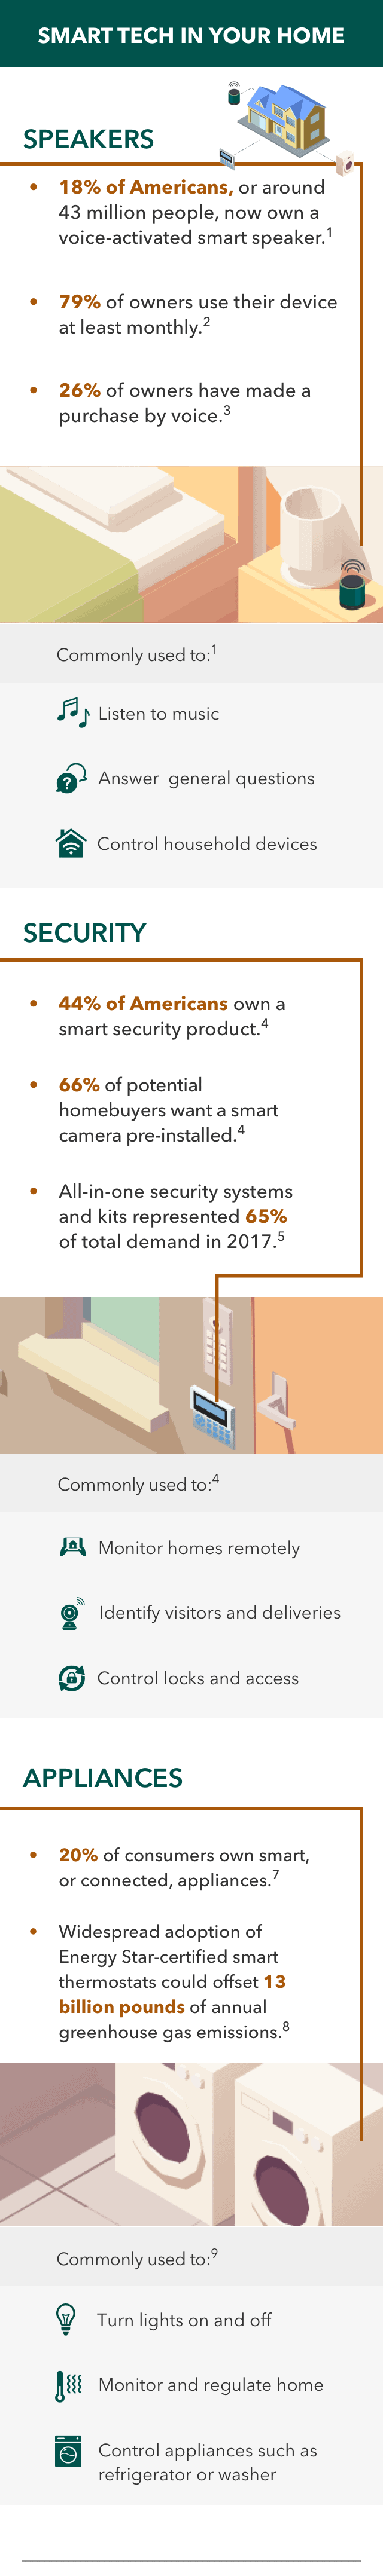 smart home technology infographic